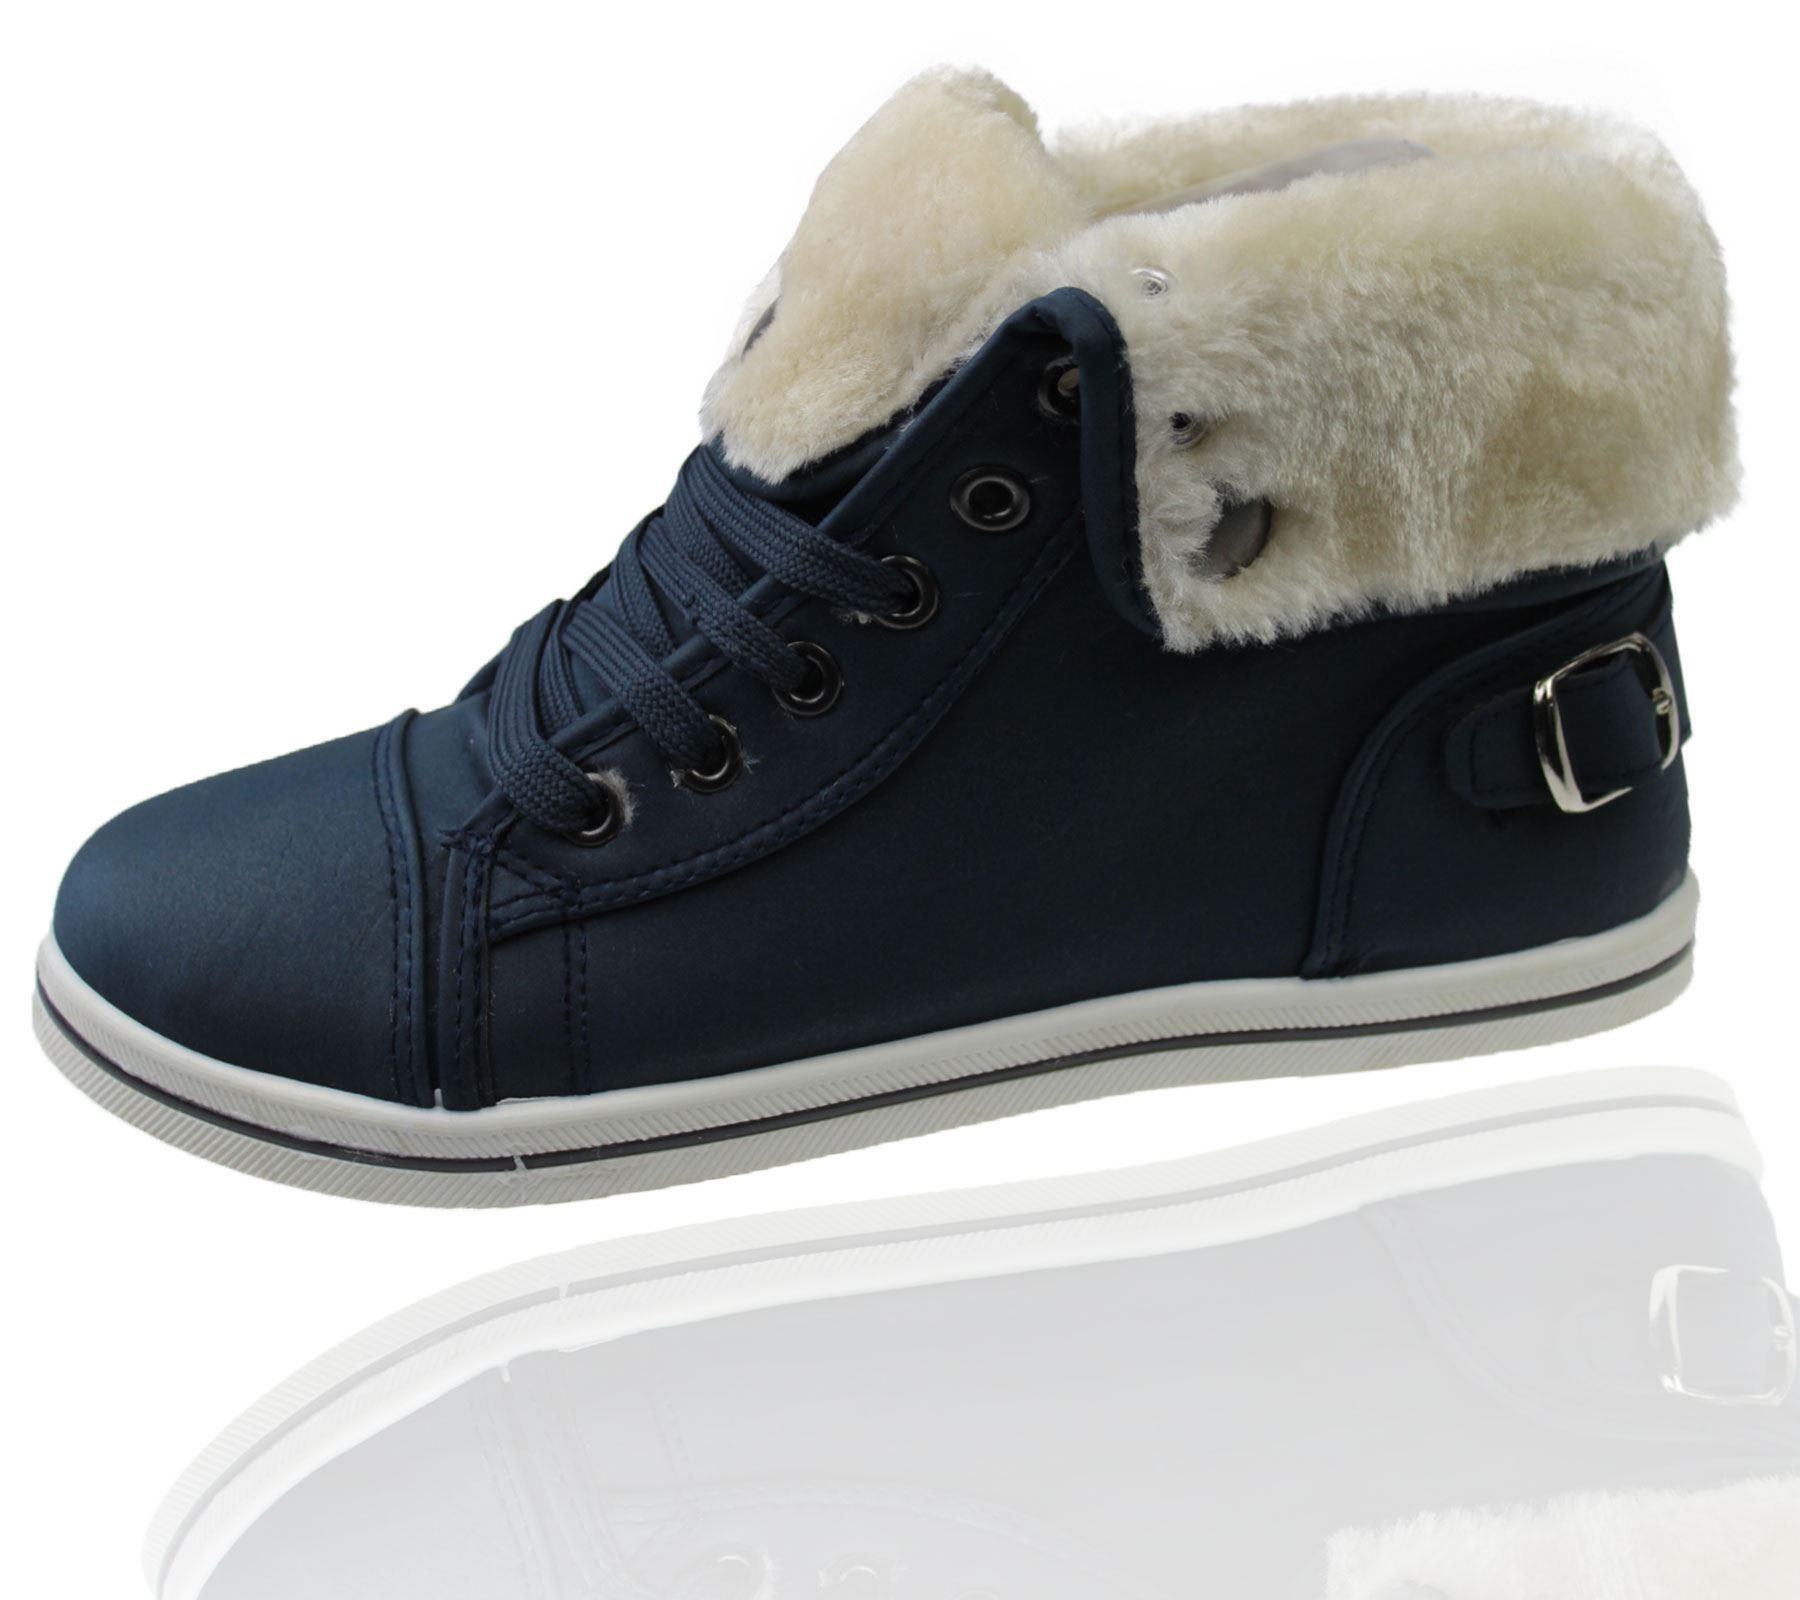 Girls-Boots-Womens-Warm-Lined-High-Top-Ankle-Trainer-Ladies-Winter-Shoes-Size miniatura 27